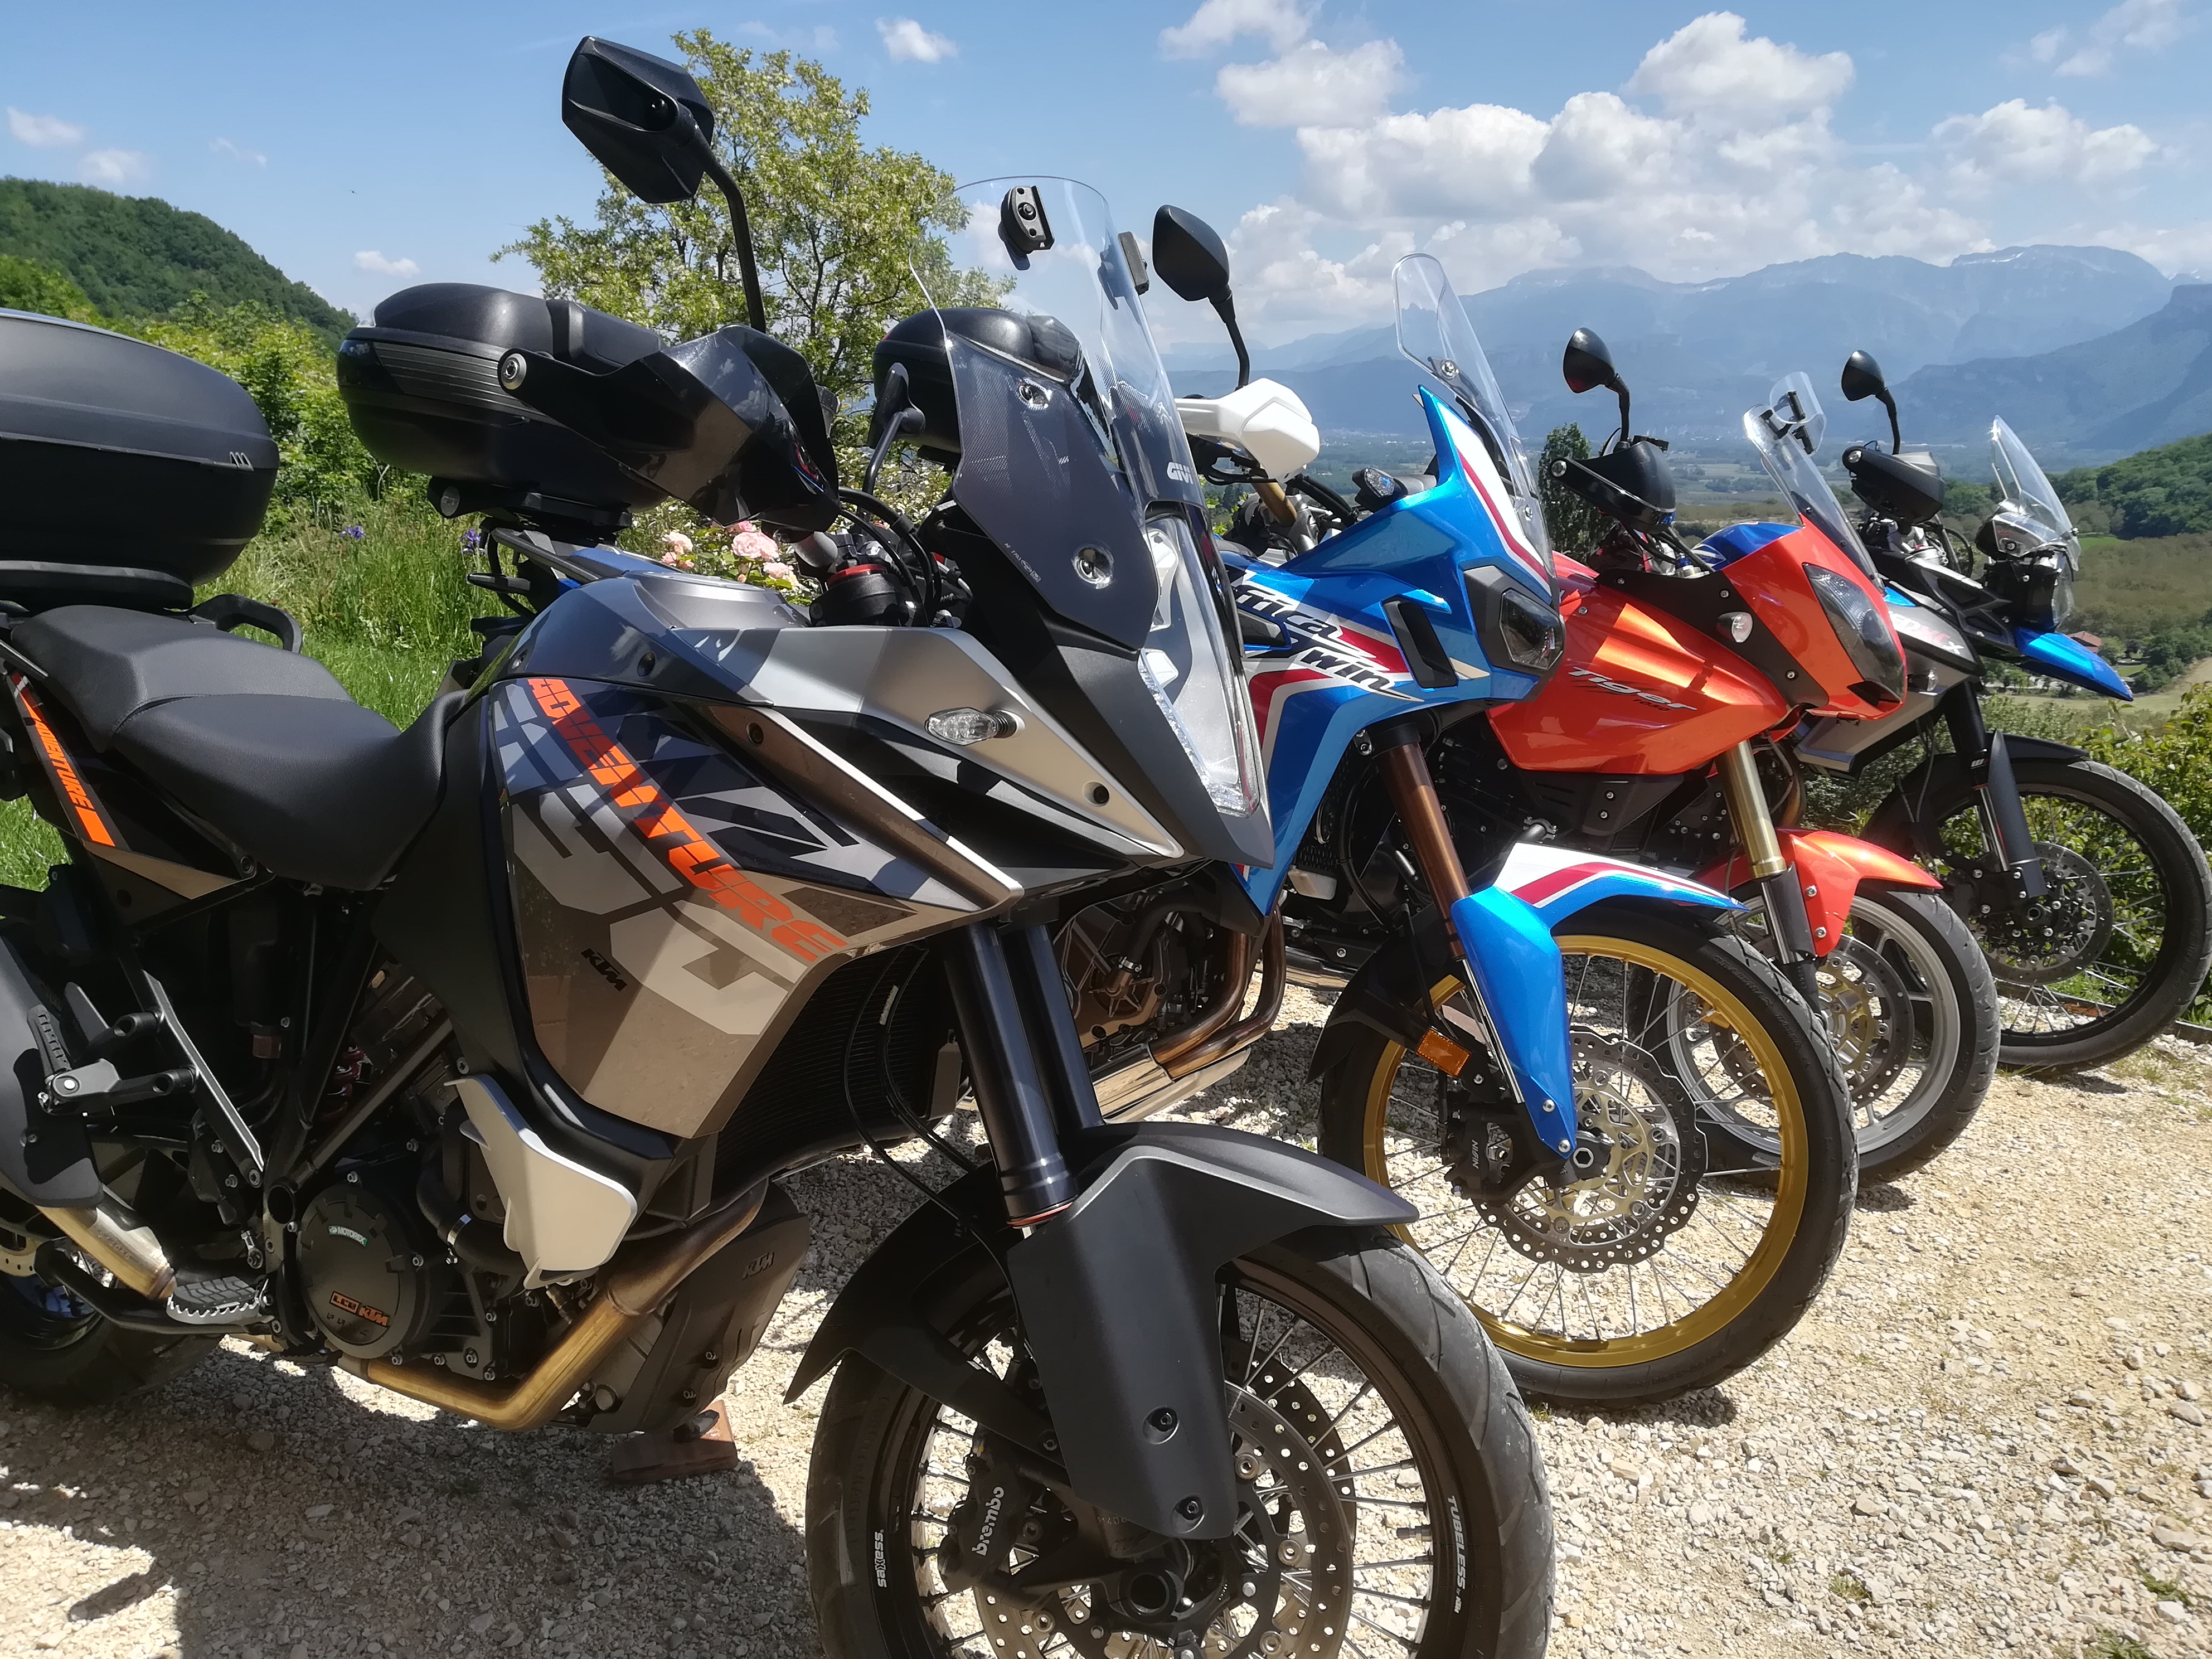 Nos Motos / Our motorcycles